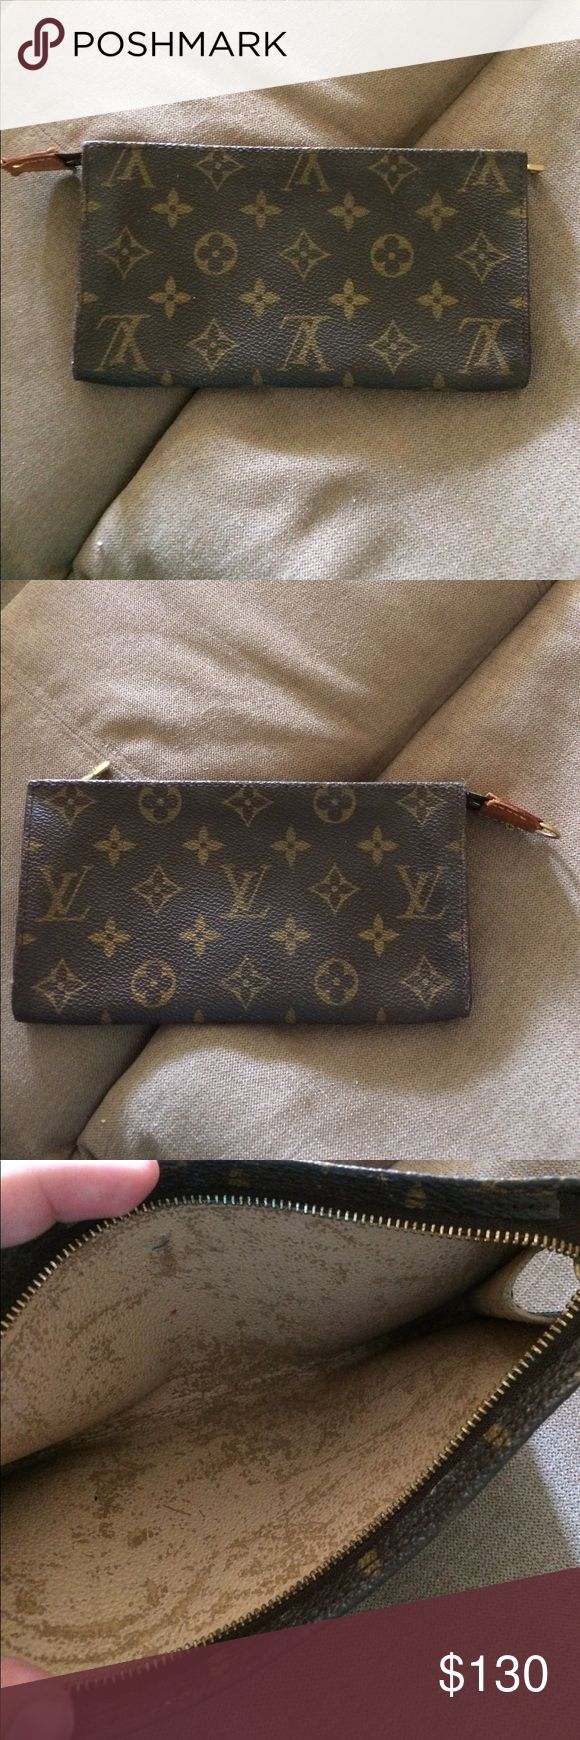 Louis Vuitton Pouchette Louis Vuitton small pouchette. The lining inside the bag is peeling somewhat as evidence by photo. Perfect size bag for a night out Louis Vuitton Bags Clutches & Wristlets